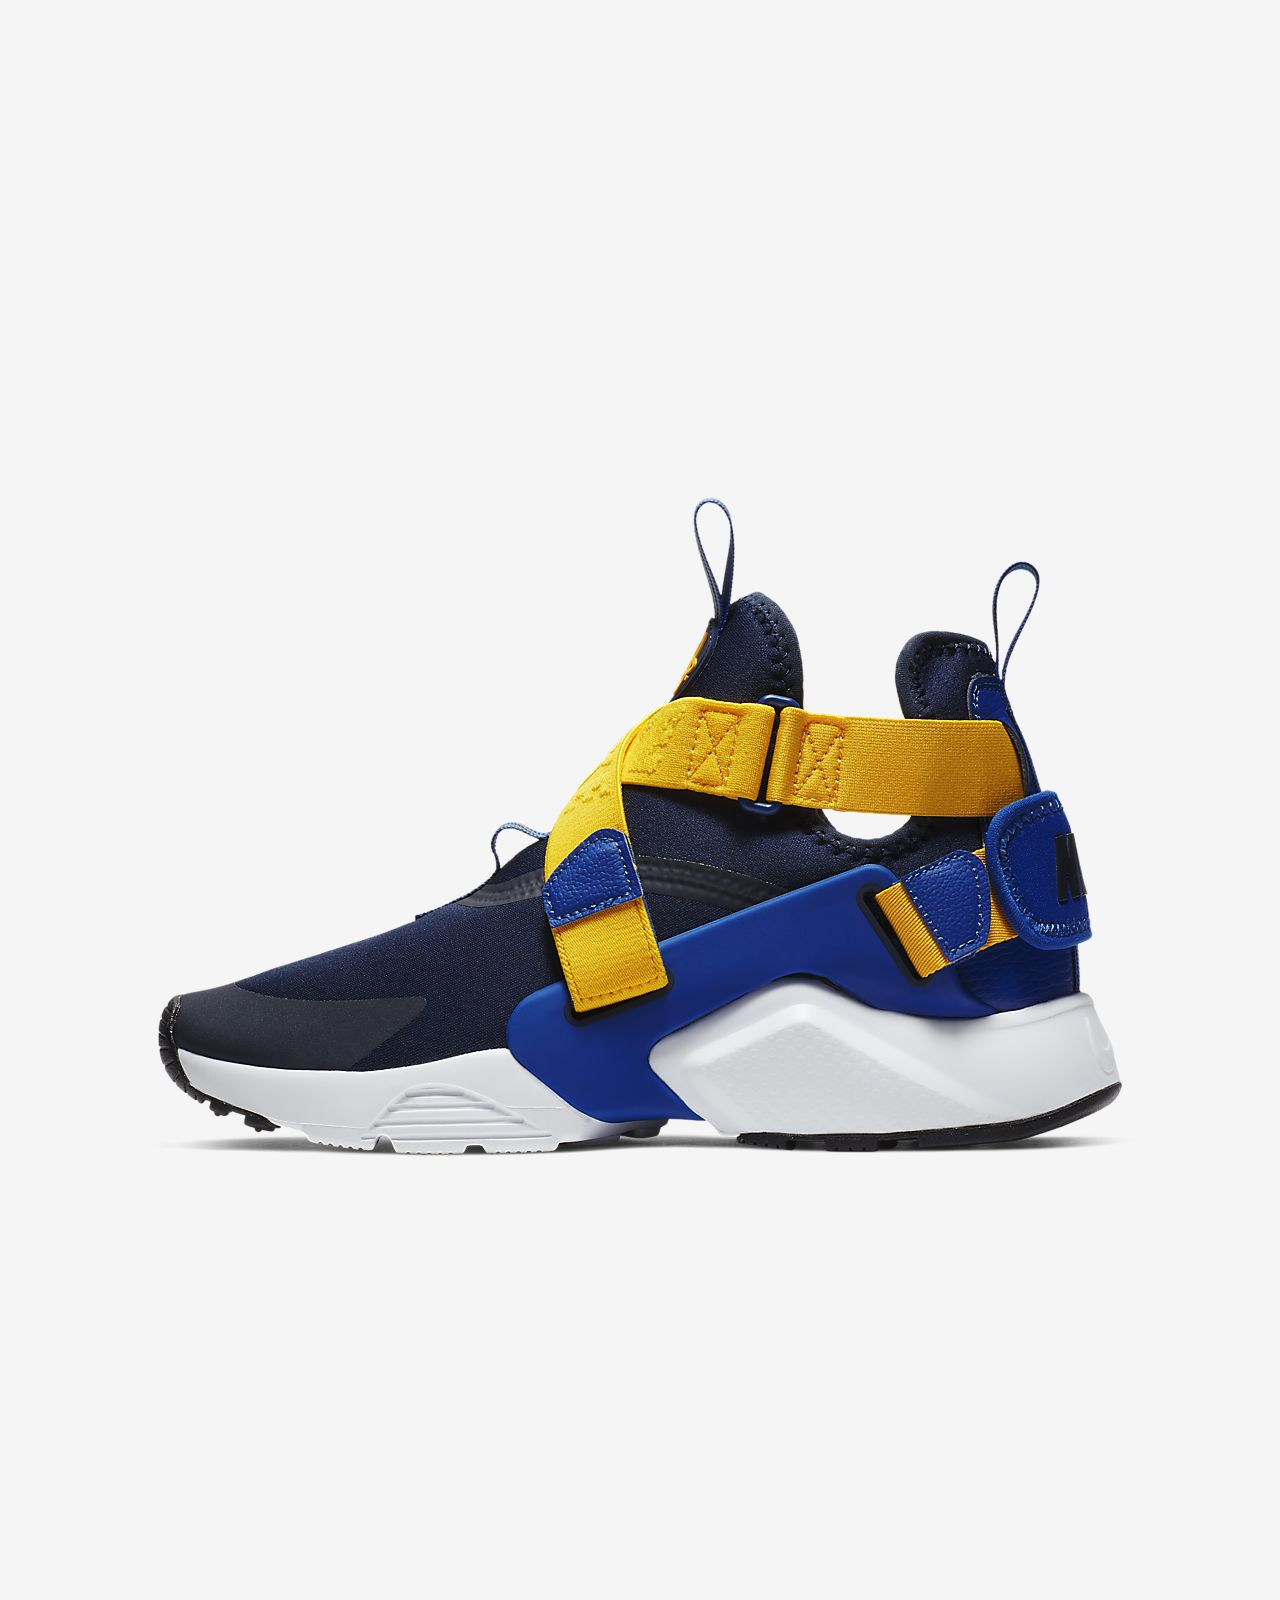 uk availability b0b29 9117b Nike Huarache City Big Kids' Shoe. Nike.com